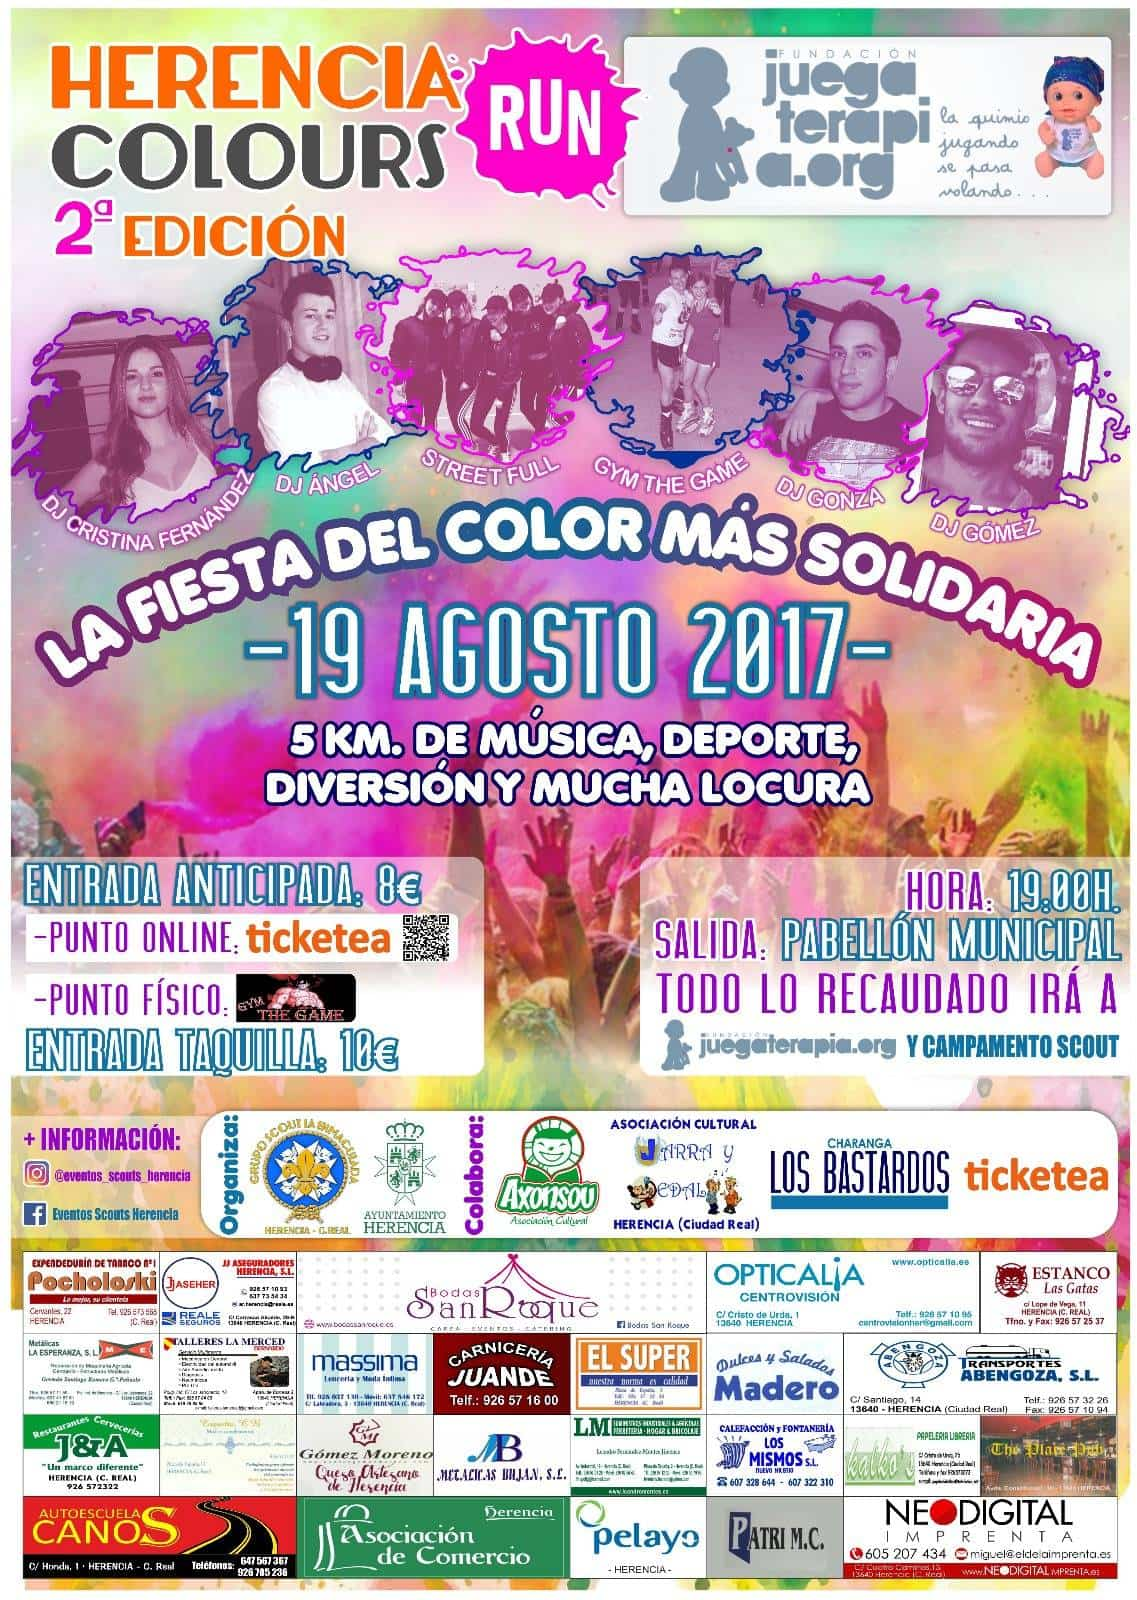 segunda herencia colours run - Abiertas las inscripciones para la II Herencia Colours Run